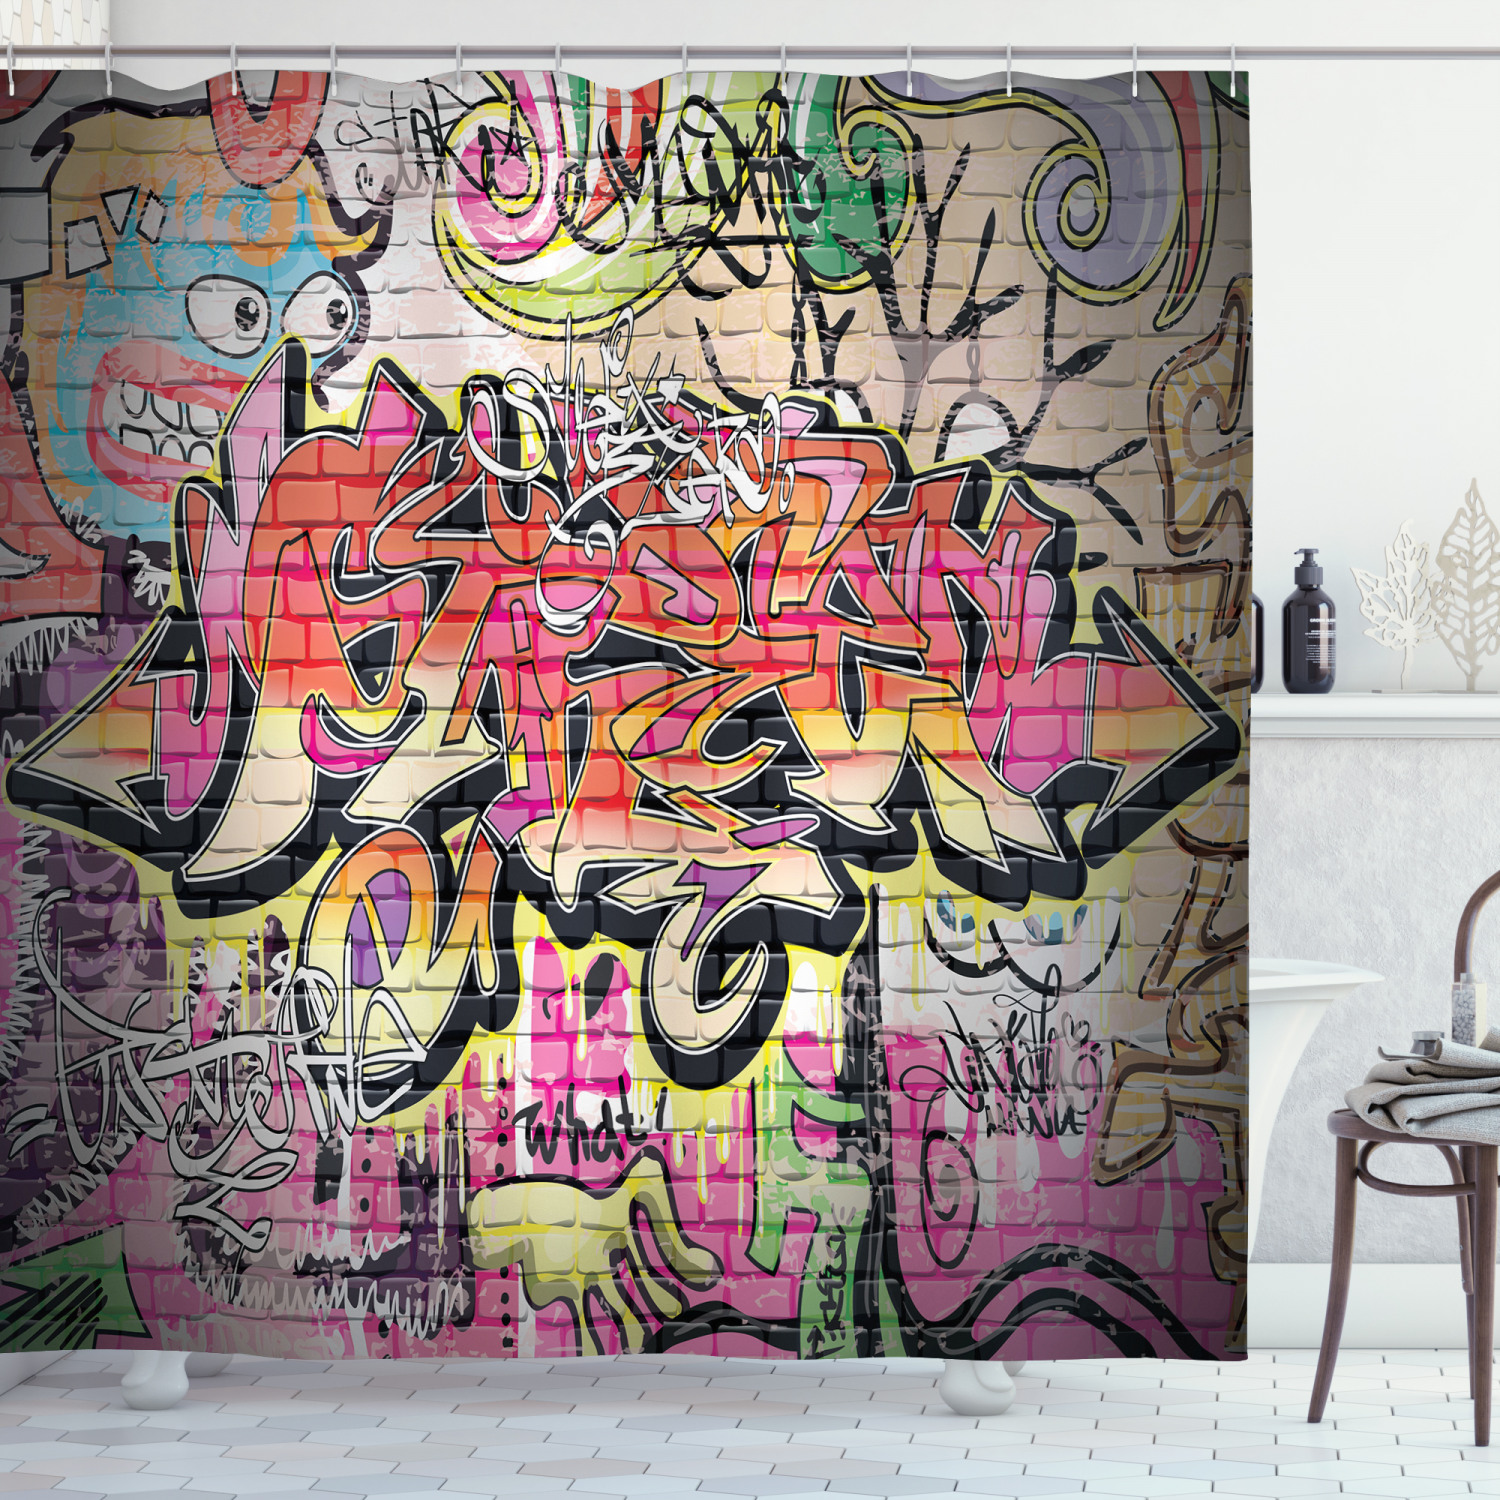 urban graffiti shower curtain wild style complex creative surreal worlds of graffiti comics and paintings fabric bathroom set with hooks 69w x 75l